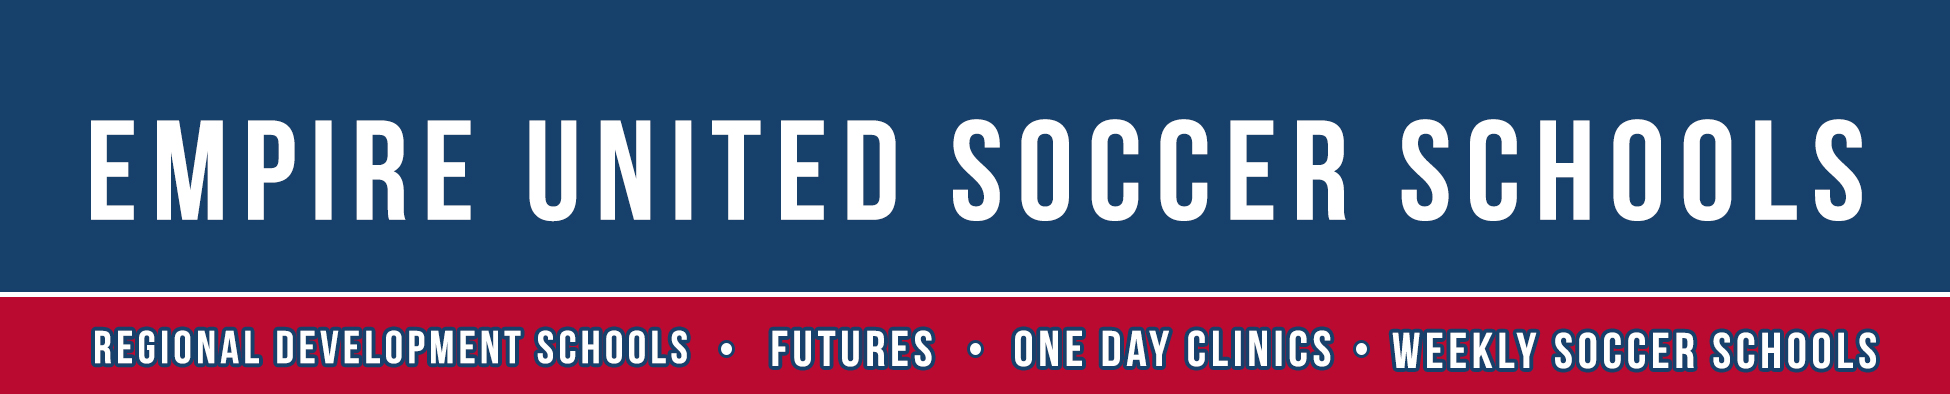 Empire United Soccer Schools - ROCHESTER